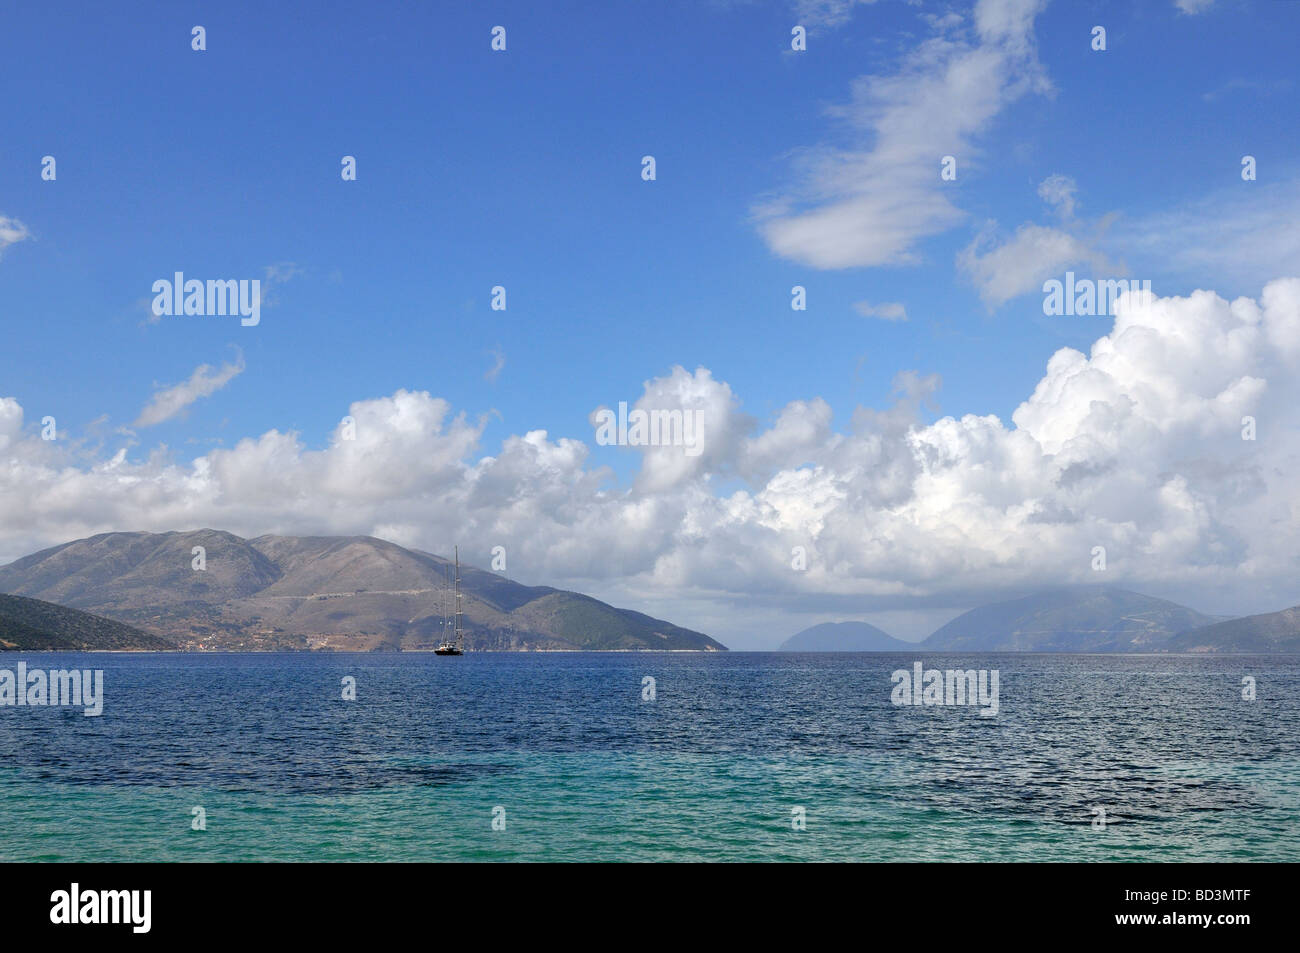 Ionian islands in the Greece sea token from Kefalonia with a view on Ithaca - Stock Image